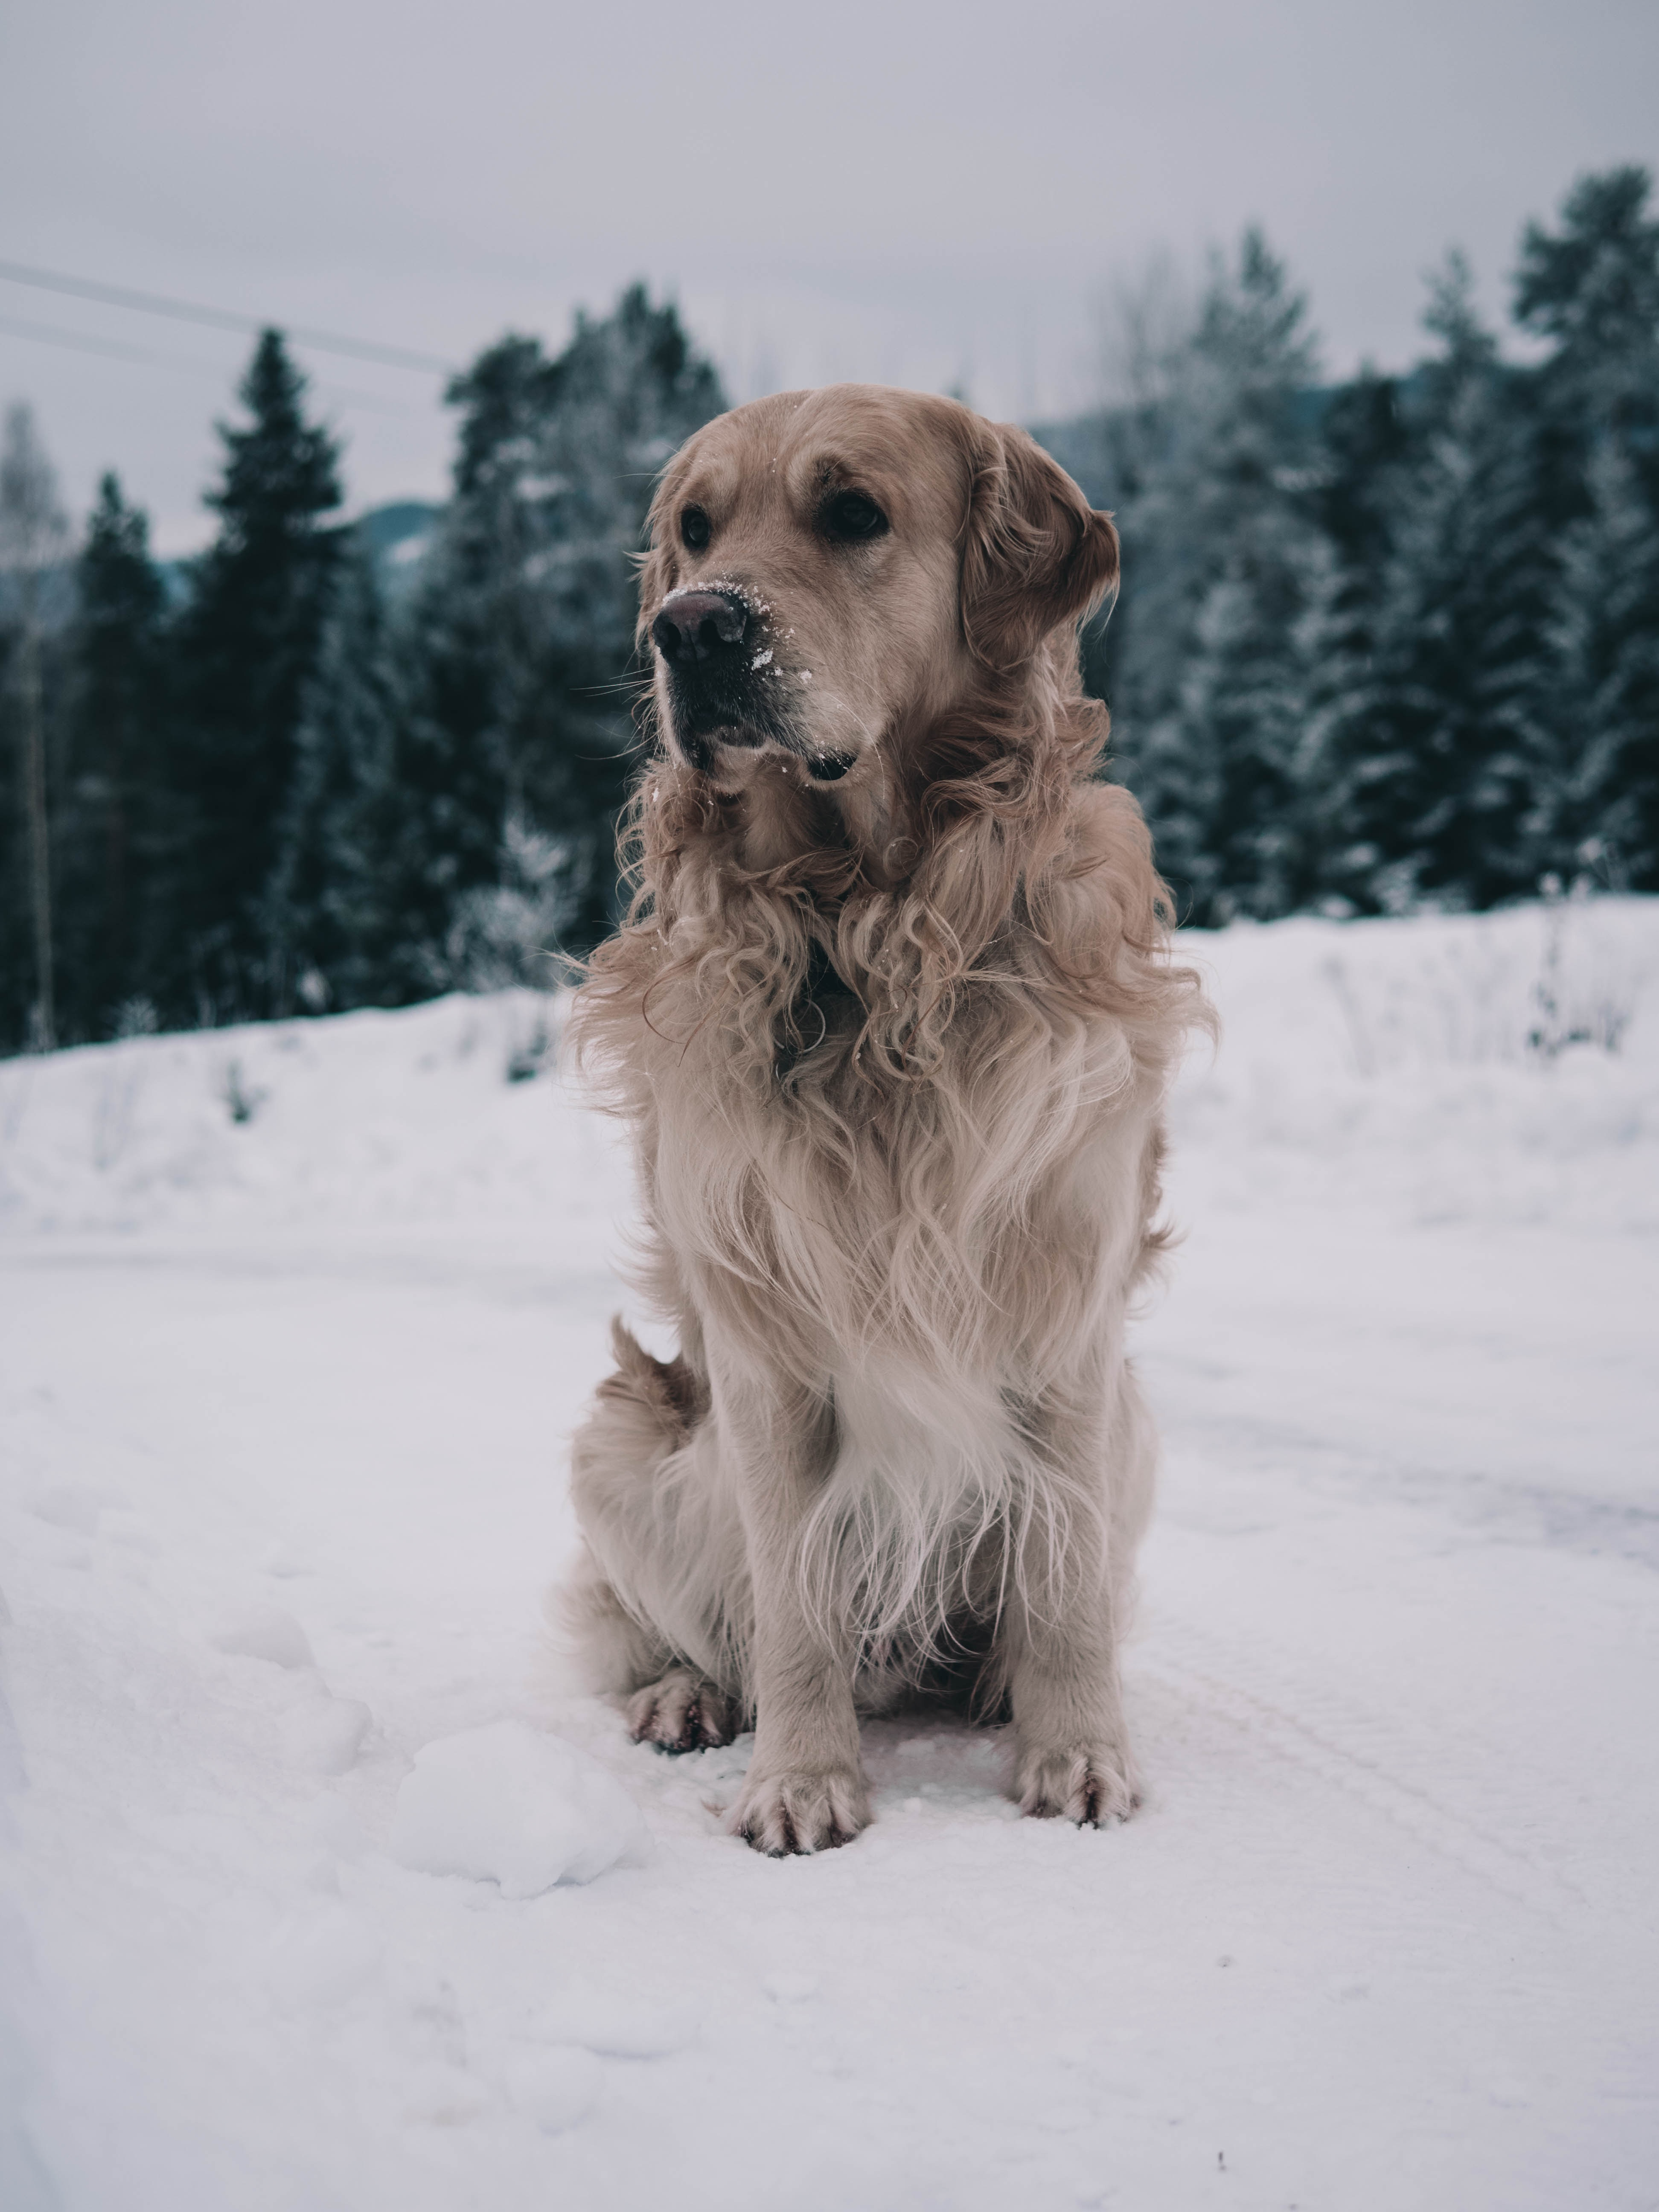 73606 download wallpaper Animals, Labrador, Dog, Muzzle, Winter, Snow screensavers and pictures for free